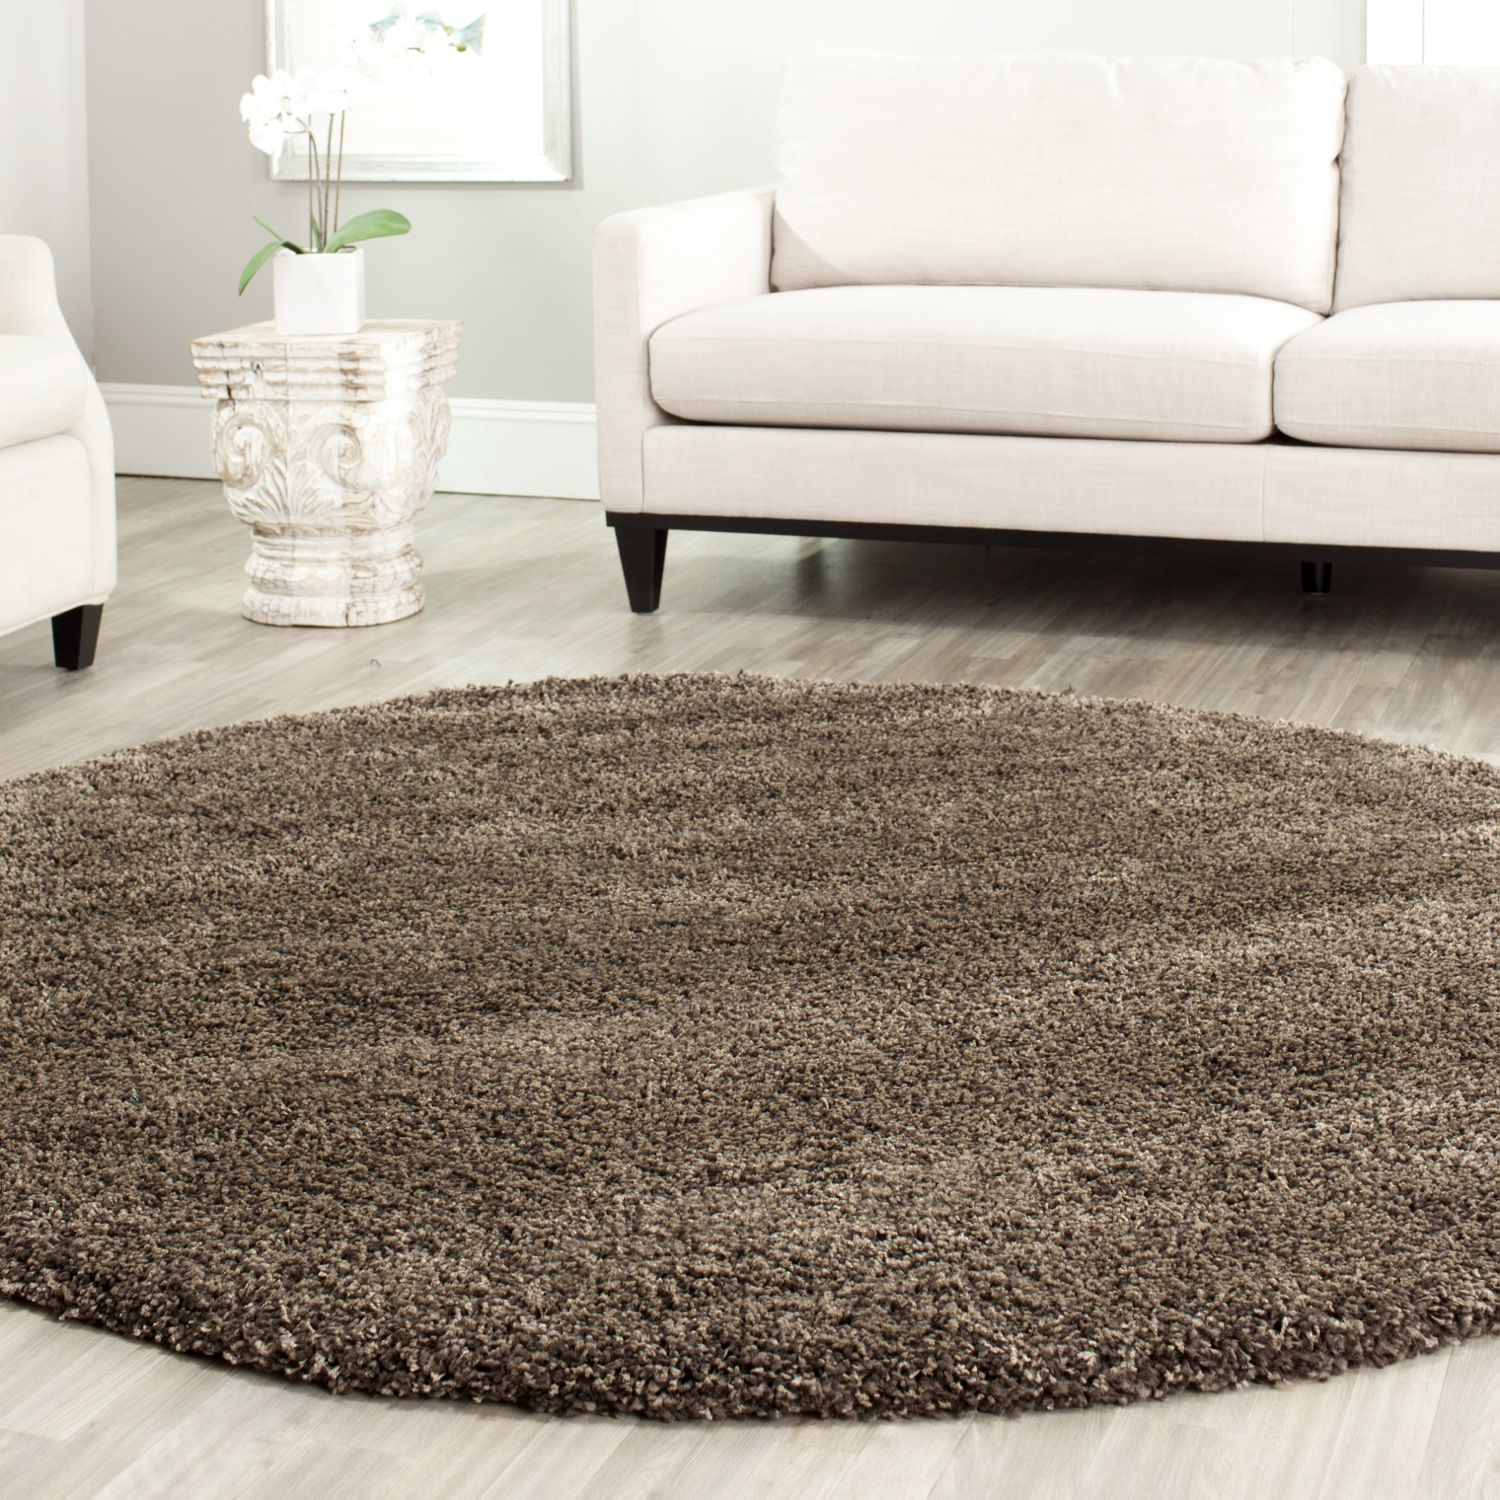 idea wholesale chair round fiber decor foot designs seagrass banana rug for your rugs leaf wicker furniture modern natural ft area lamps chairs best